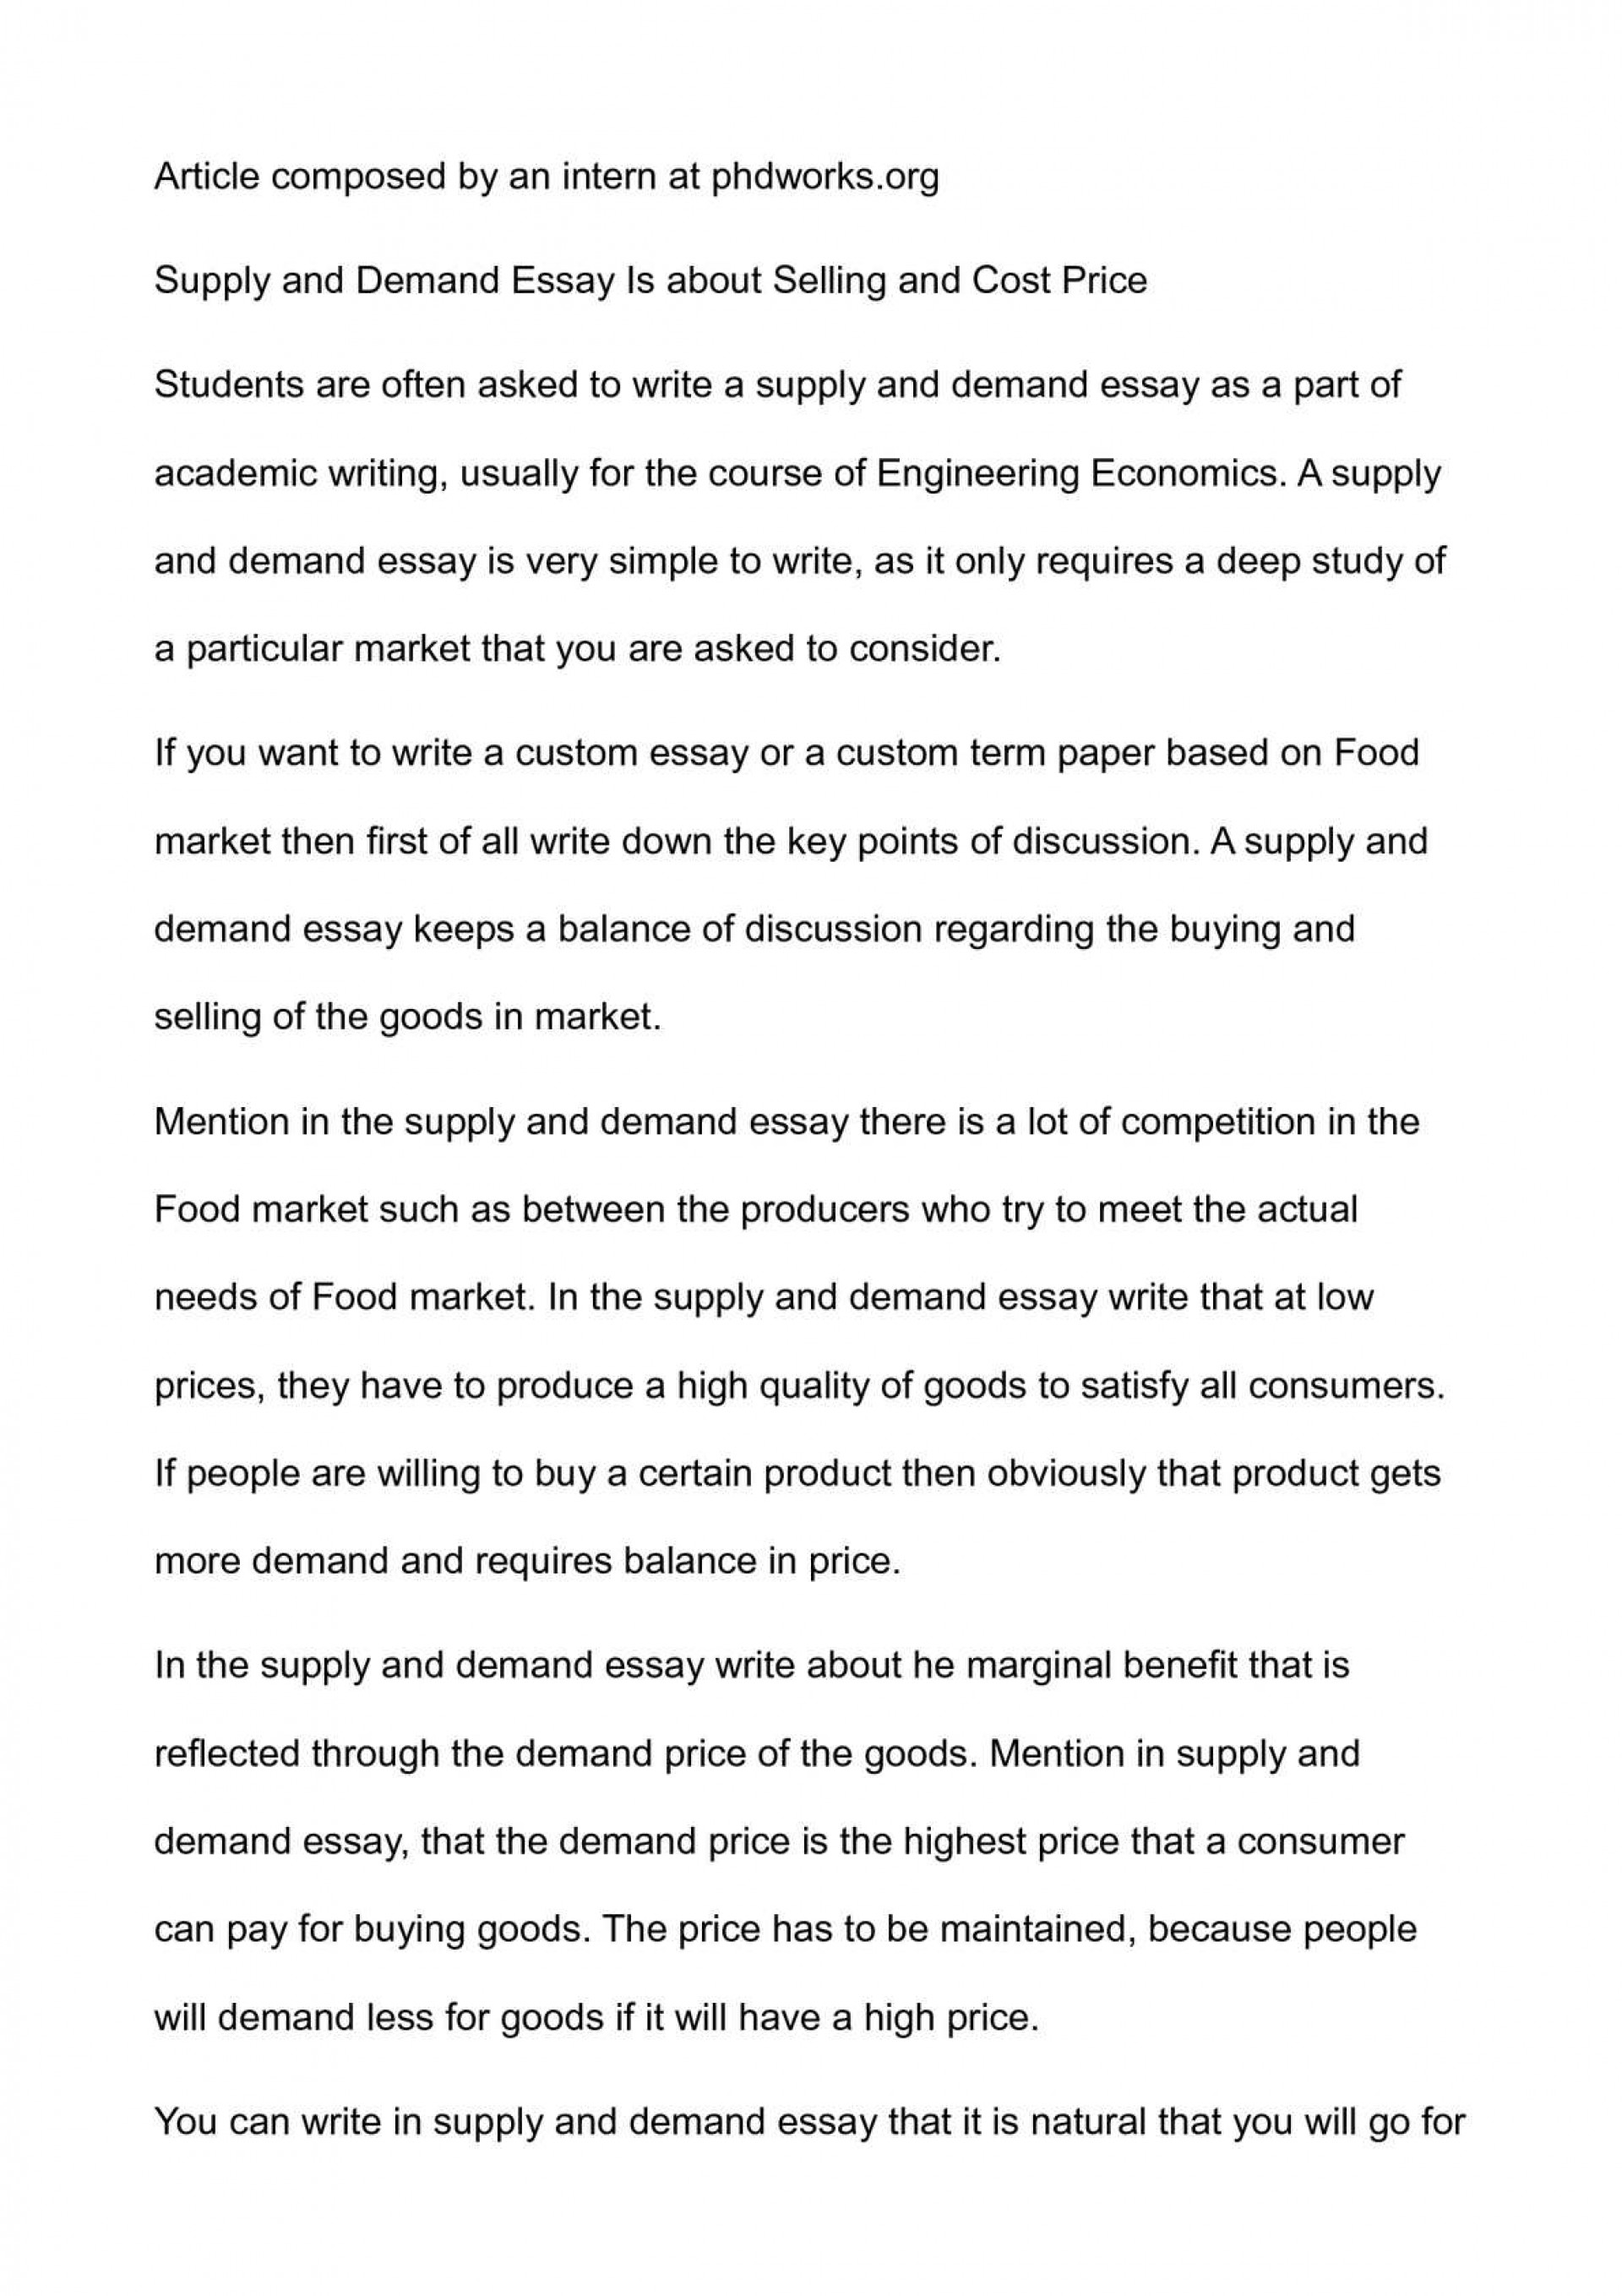 001 Essay Supply P1 Shocking Essaysupply Sign Up Sample On And Demand Chain Management Conclusion 1920